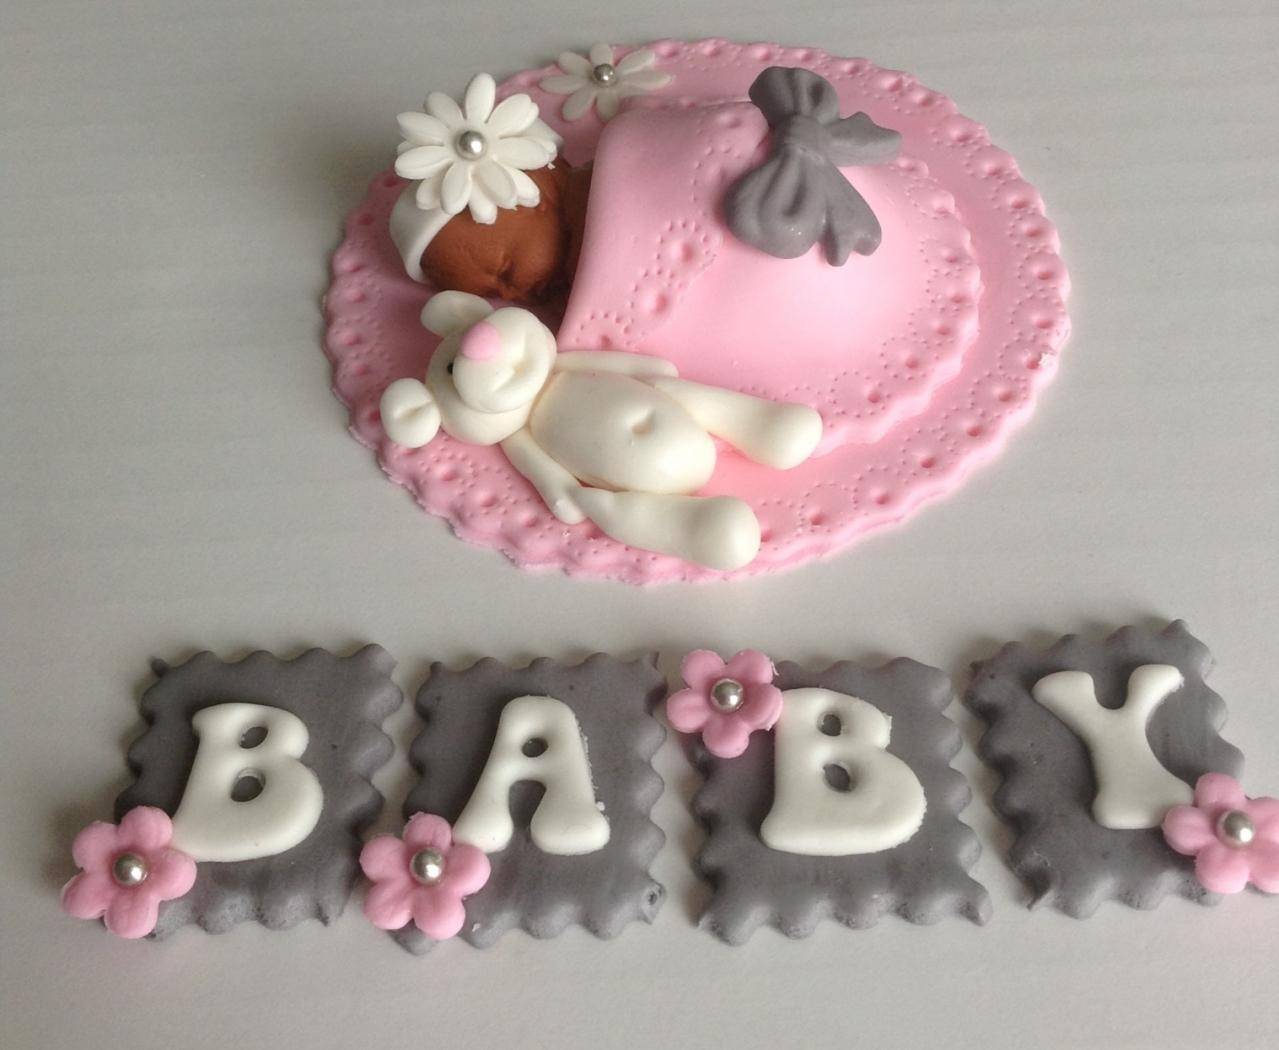 Cake Toppers Baby Girl : BABY SHOWER CAKE TOPPER FONDANT EDIBLE PINK AND GREY BABY ...